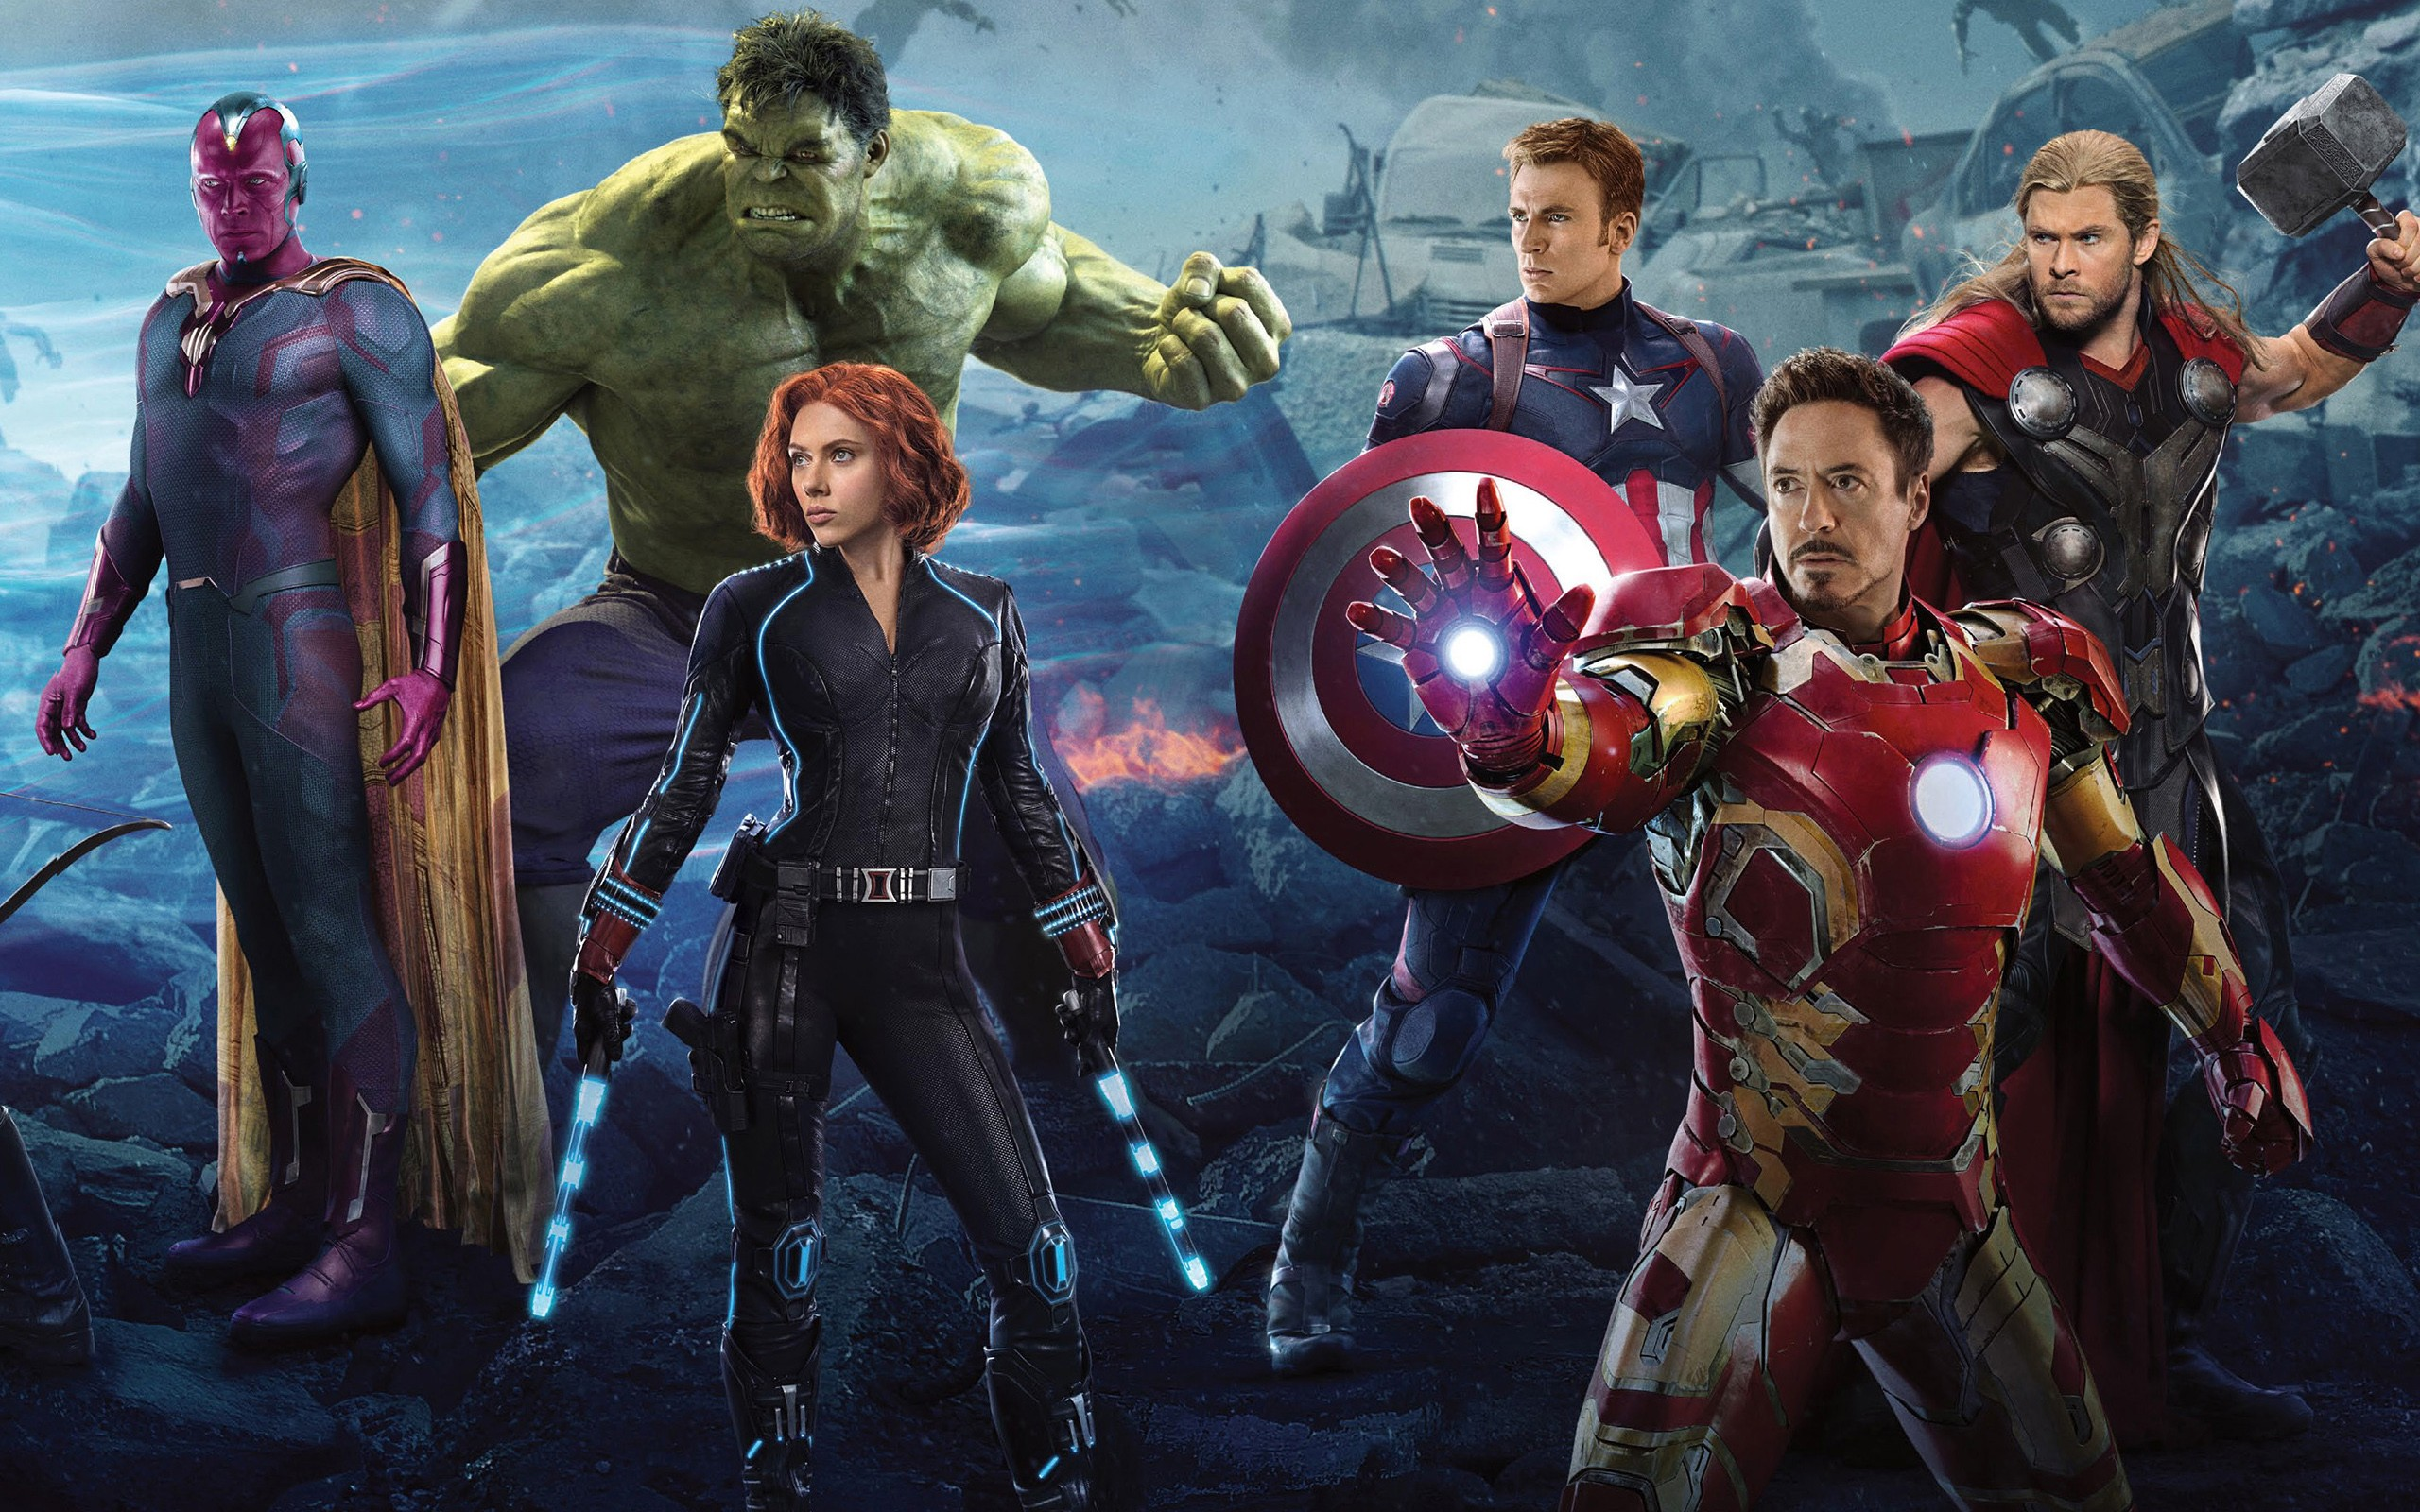 Avengers 2 hd movies 4k wallpapers images backgrounds - Images avengers ...